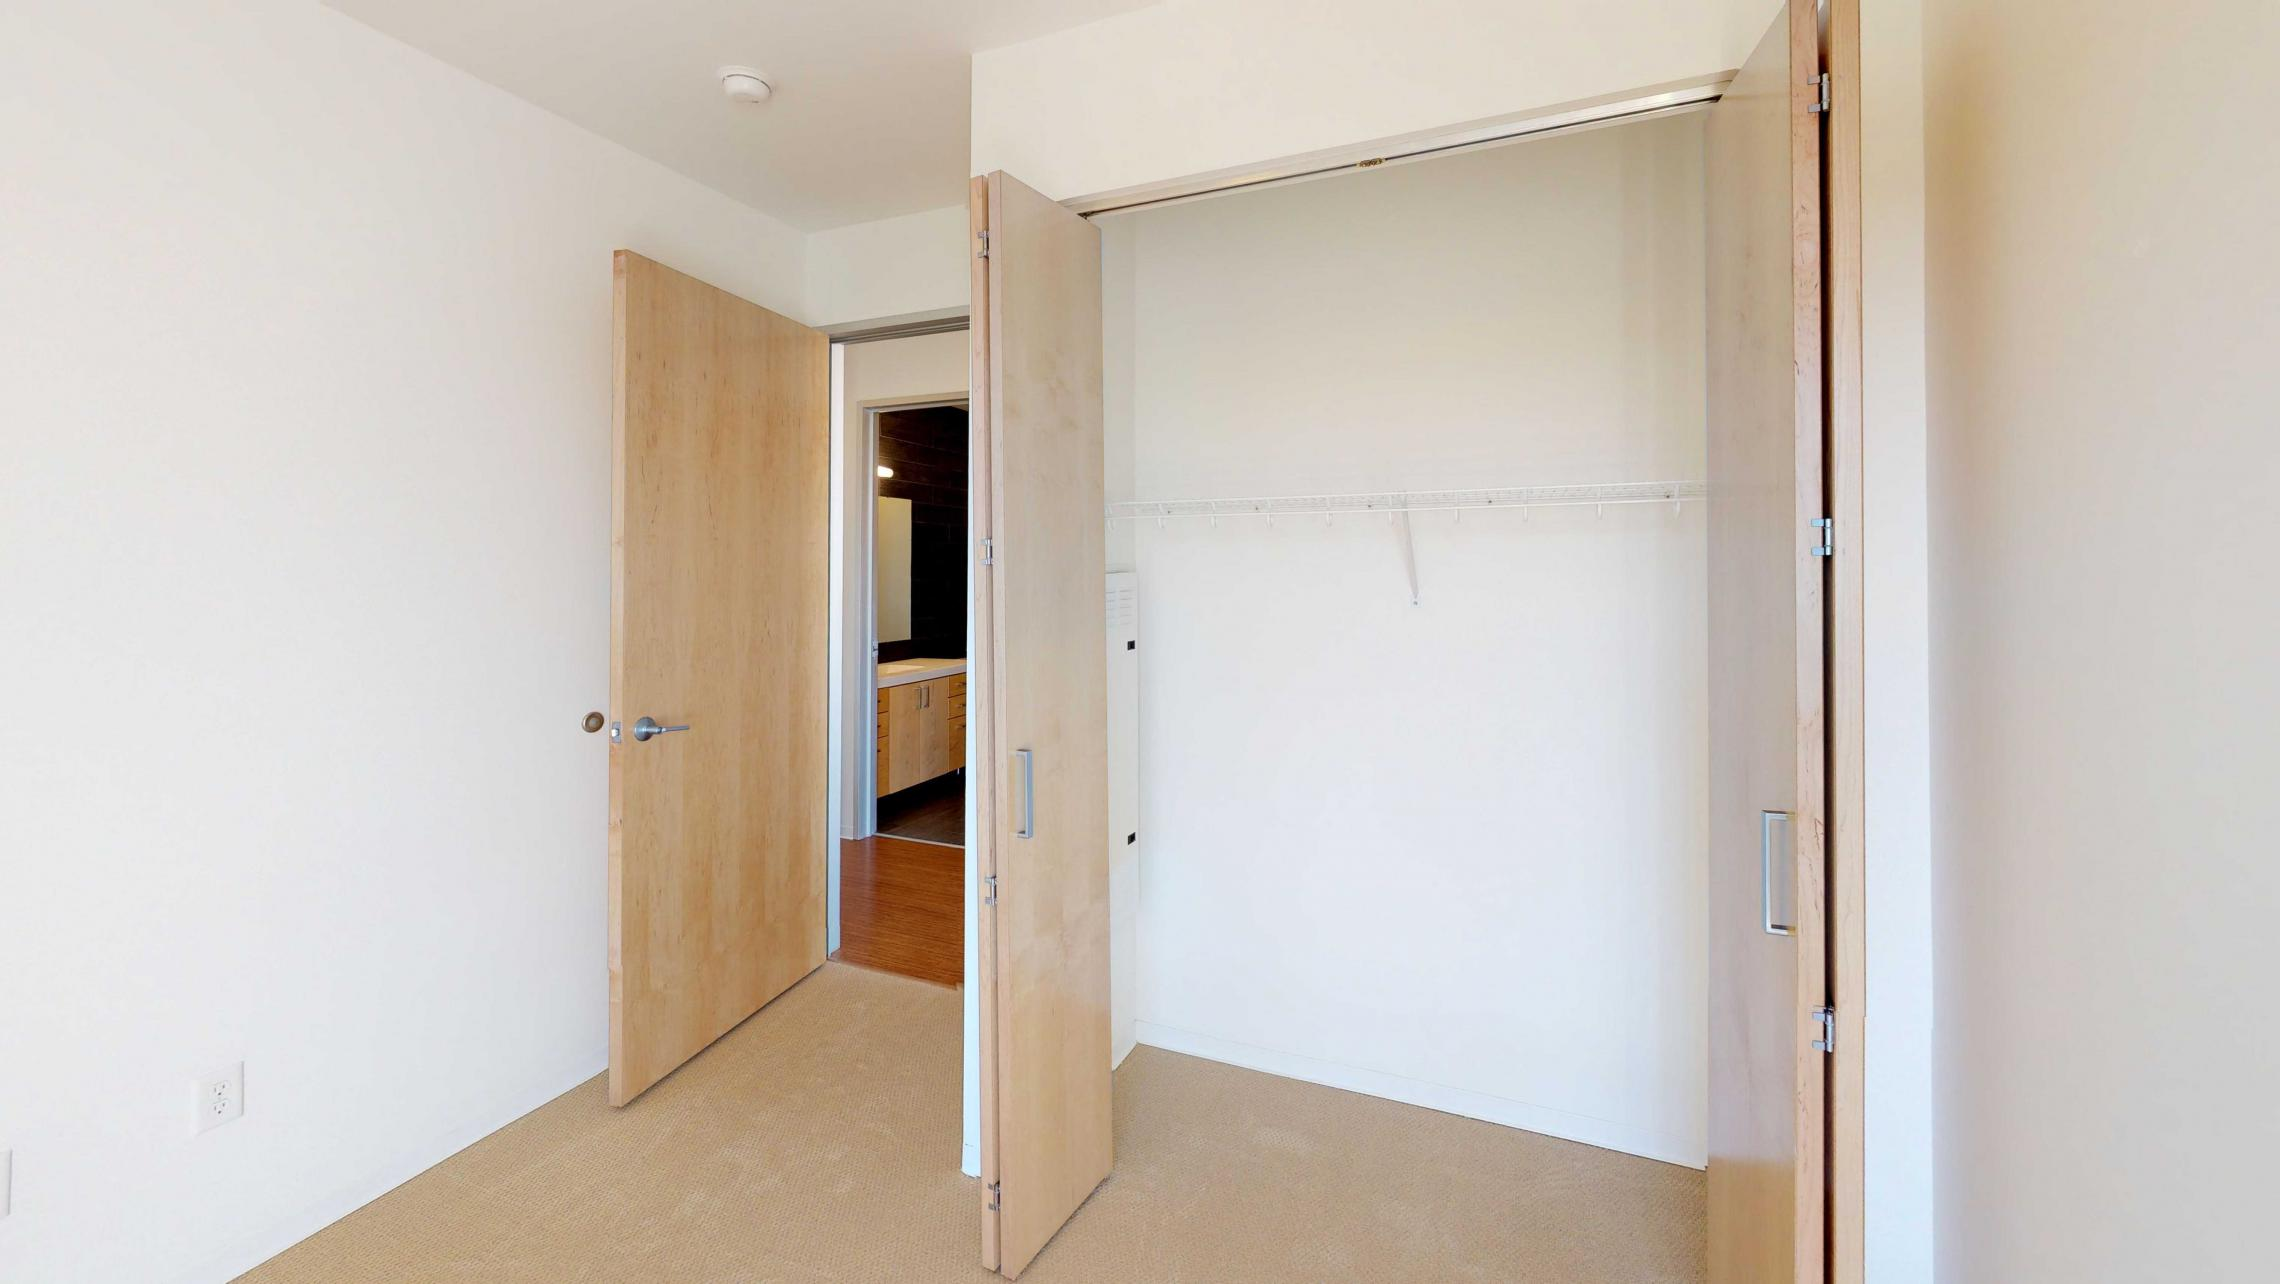 SEVEN27-Apartment-524-wo bedroom-Modern-Luxuy-Upscale-Capitol View-Lake View-Tp Floor-Balcony-Terrace-City View-Guest-Bedroom-closet.jpg